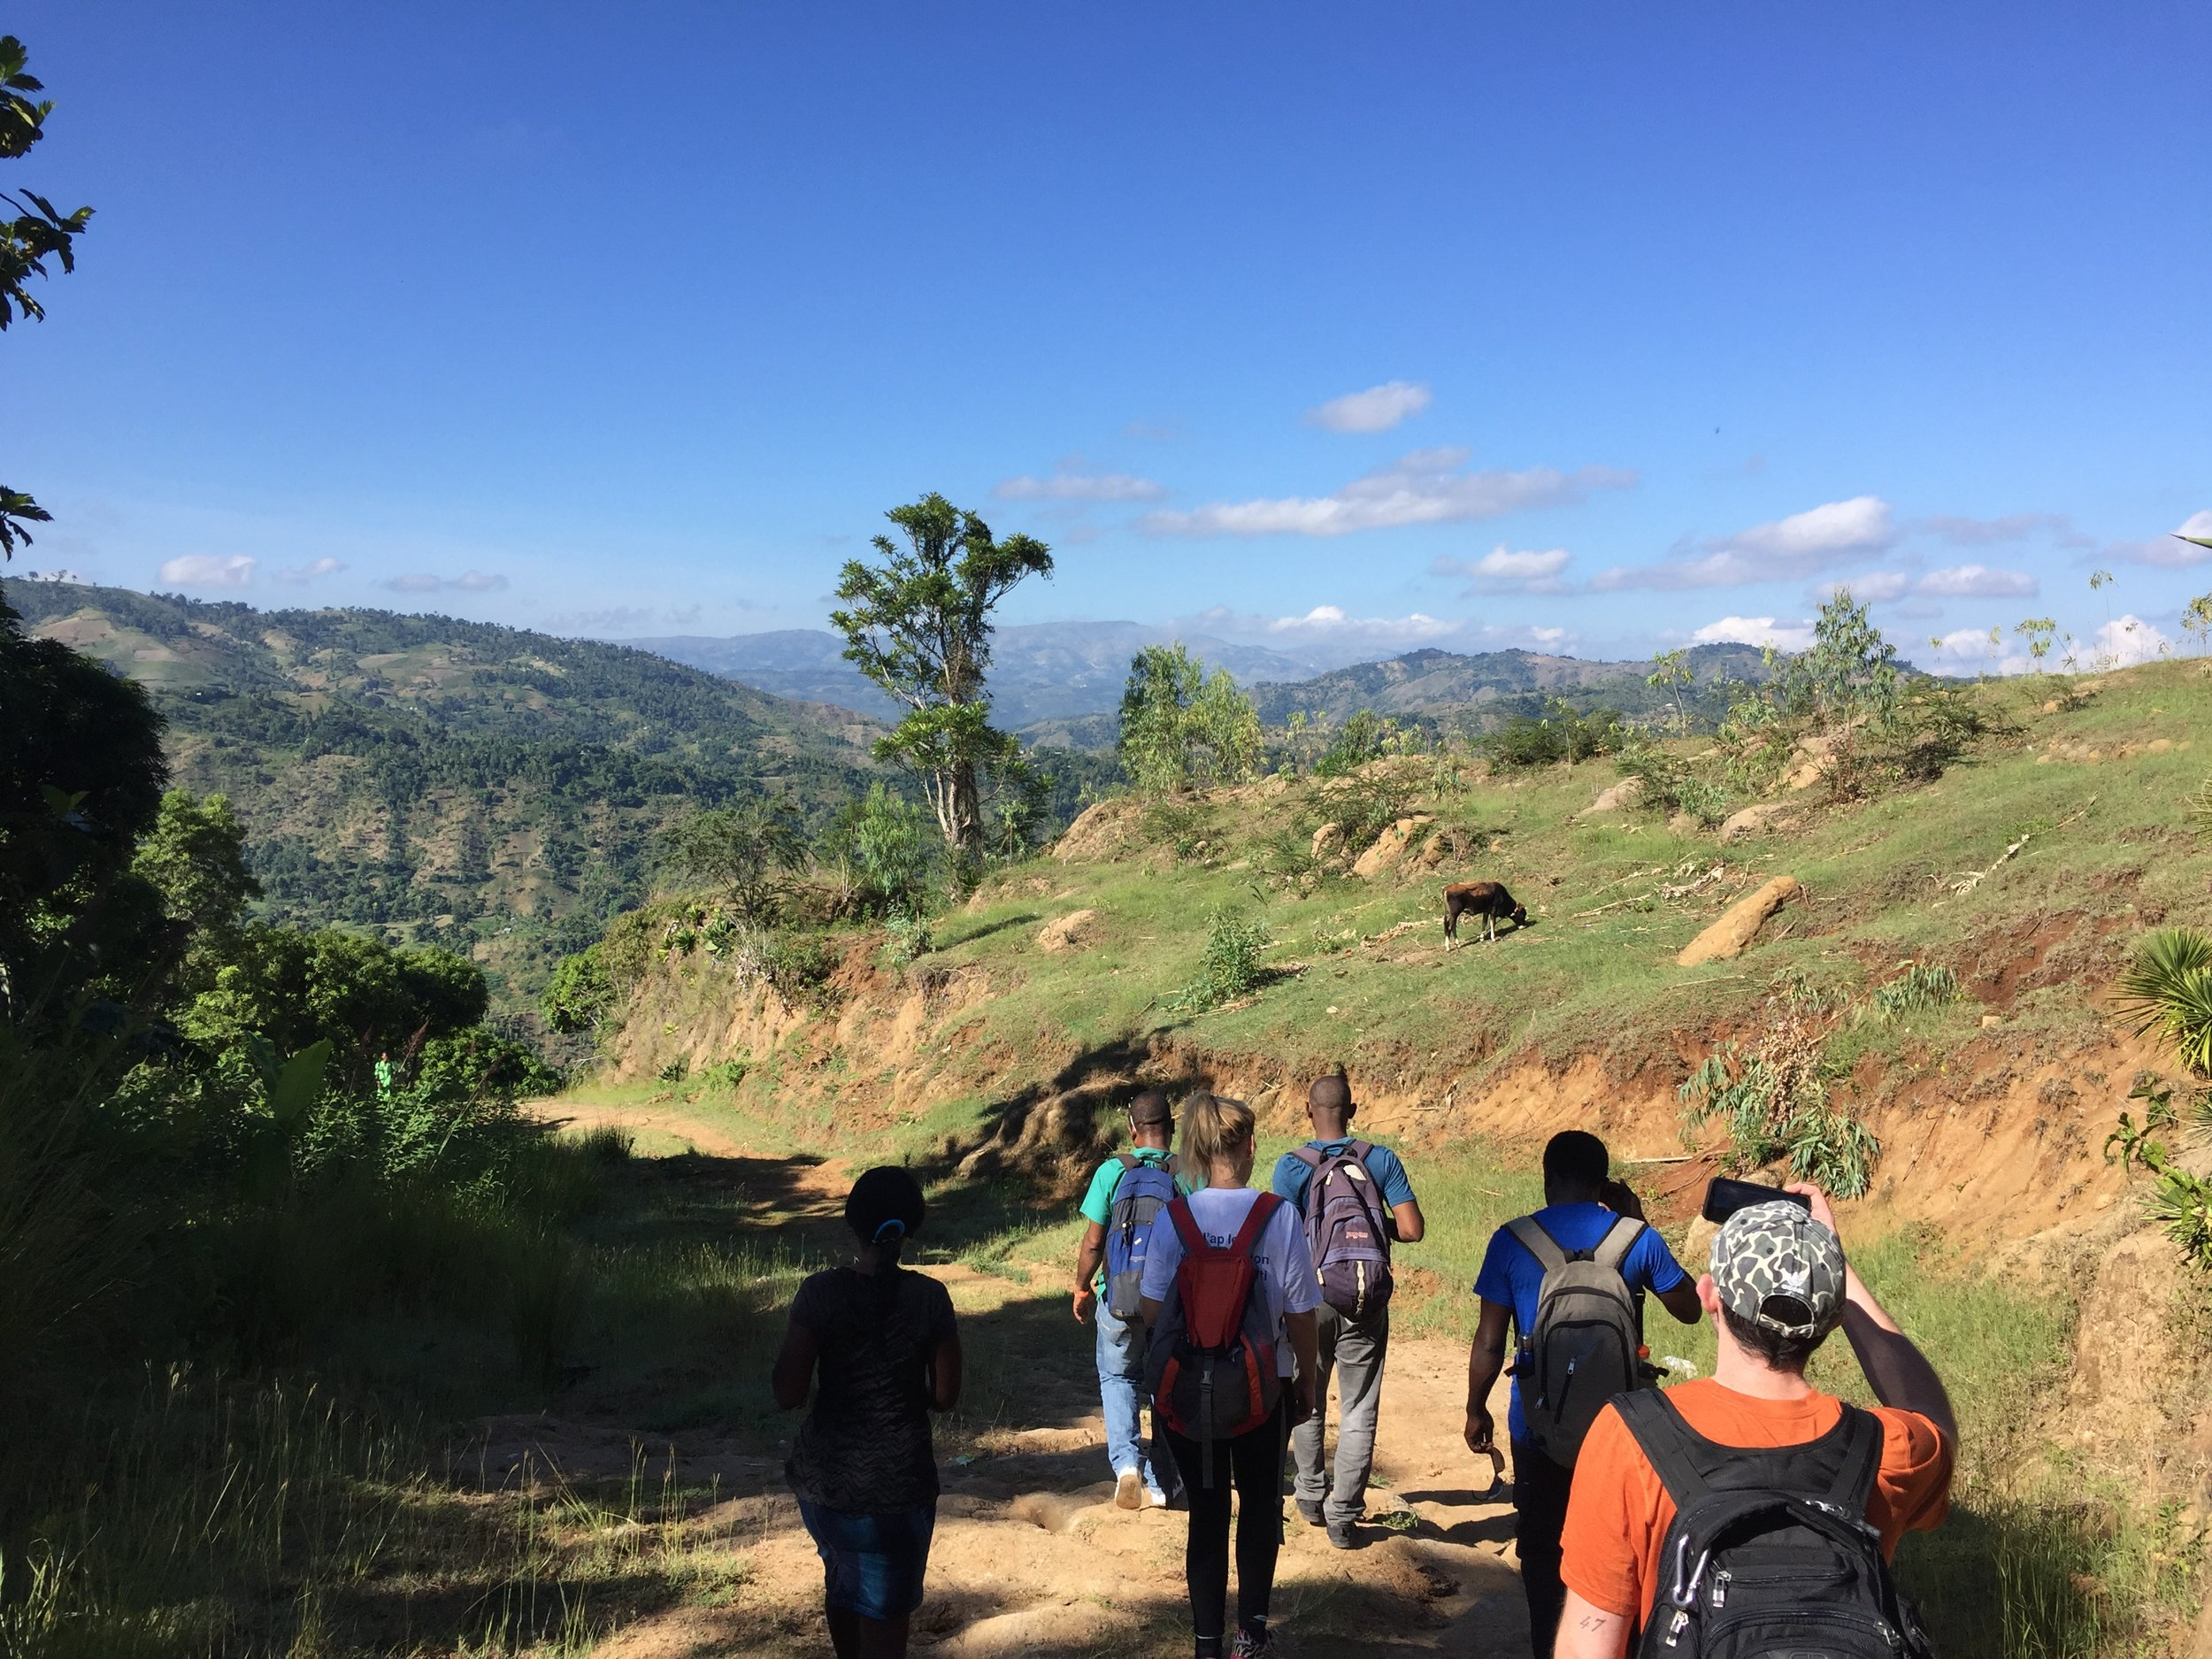 The Kore Timoun team, interpreters, and health practitioners hike to the village where they will setup the mobile clinic for the day